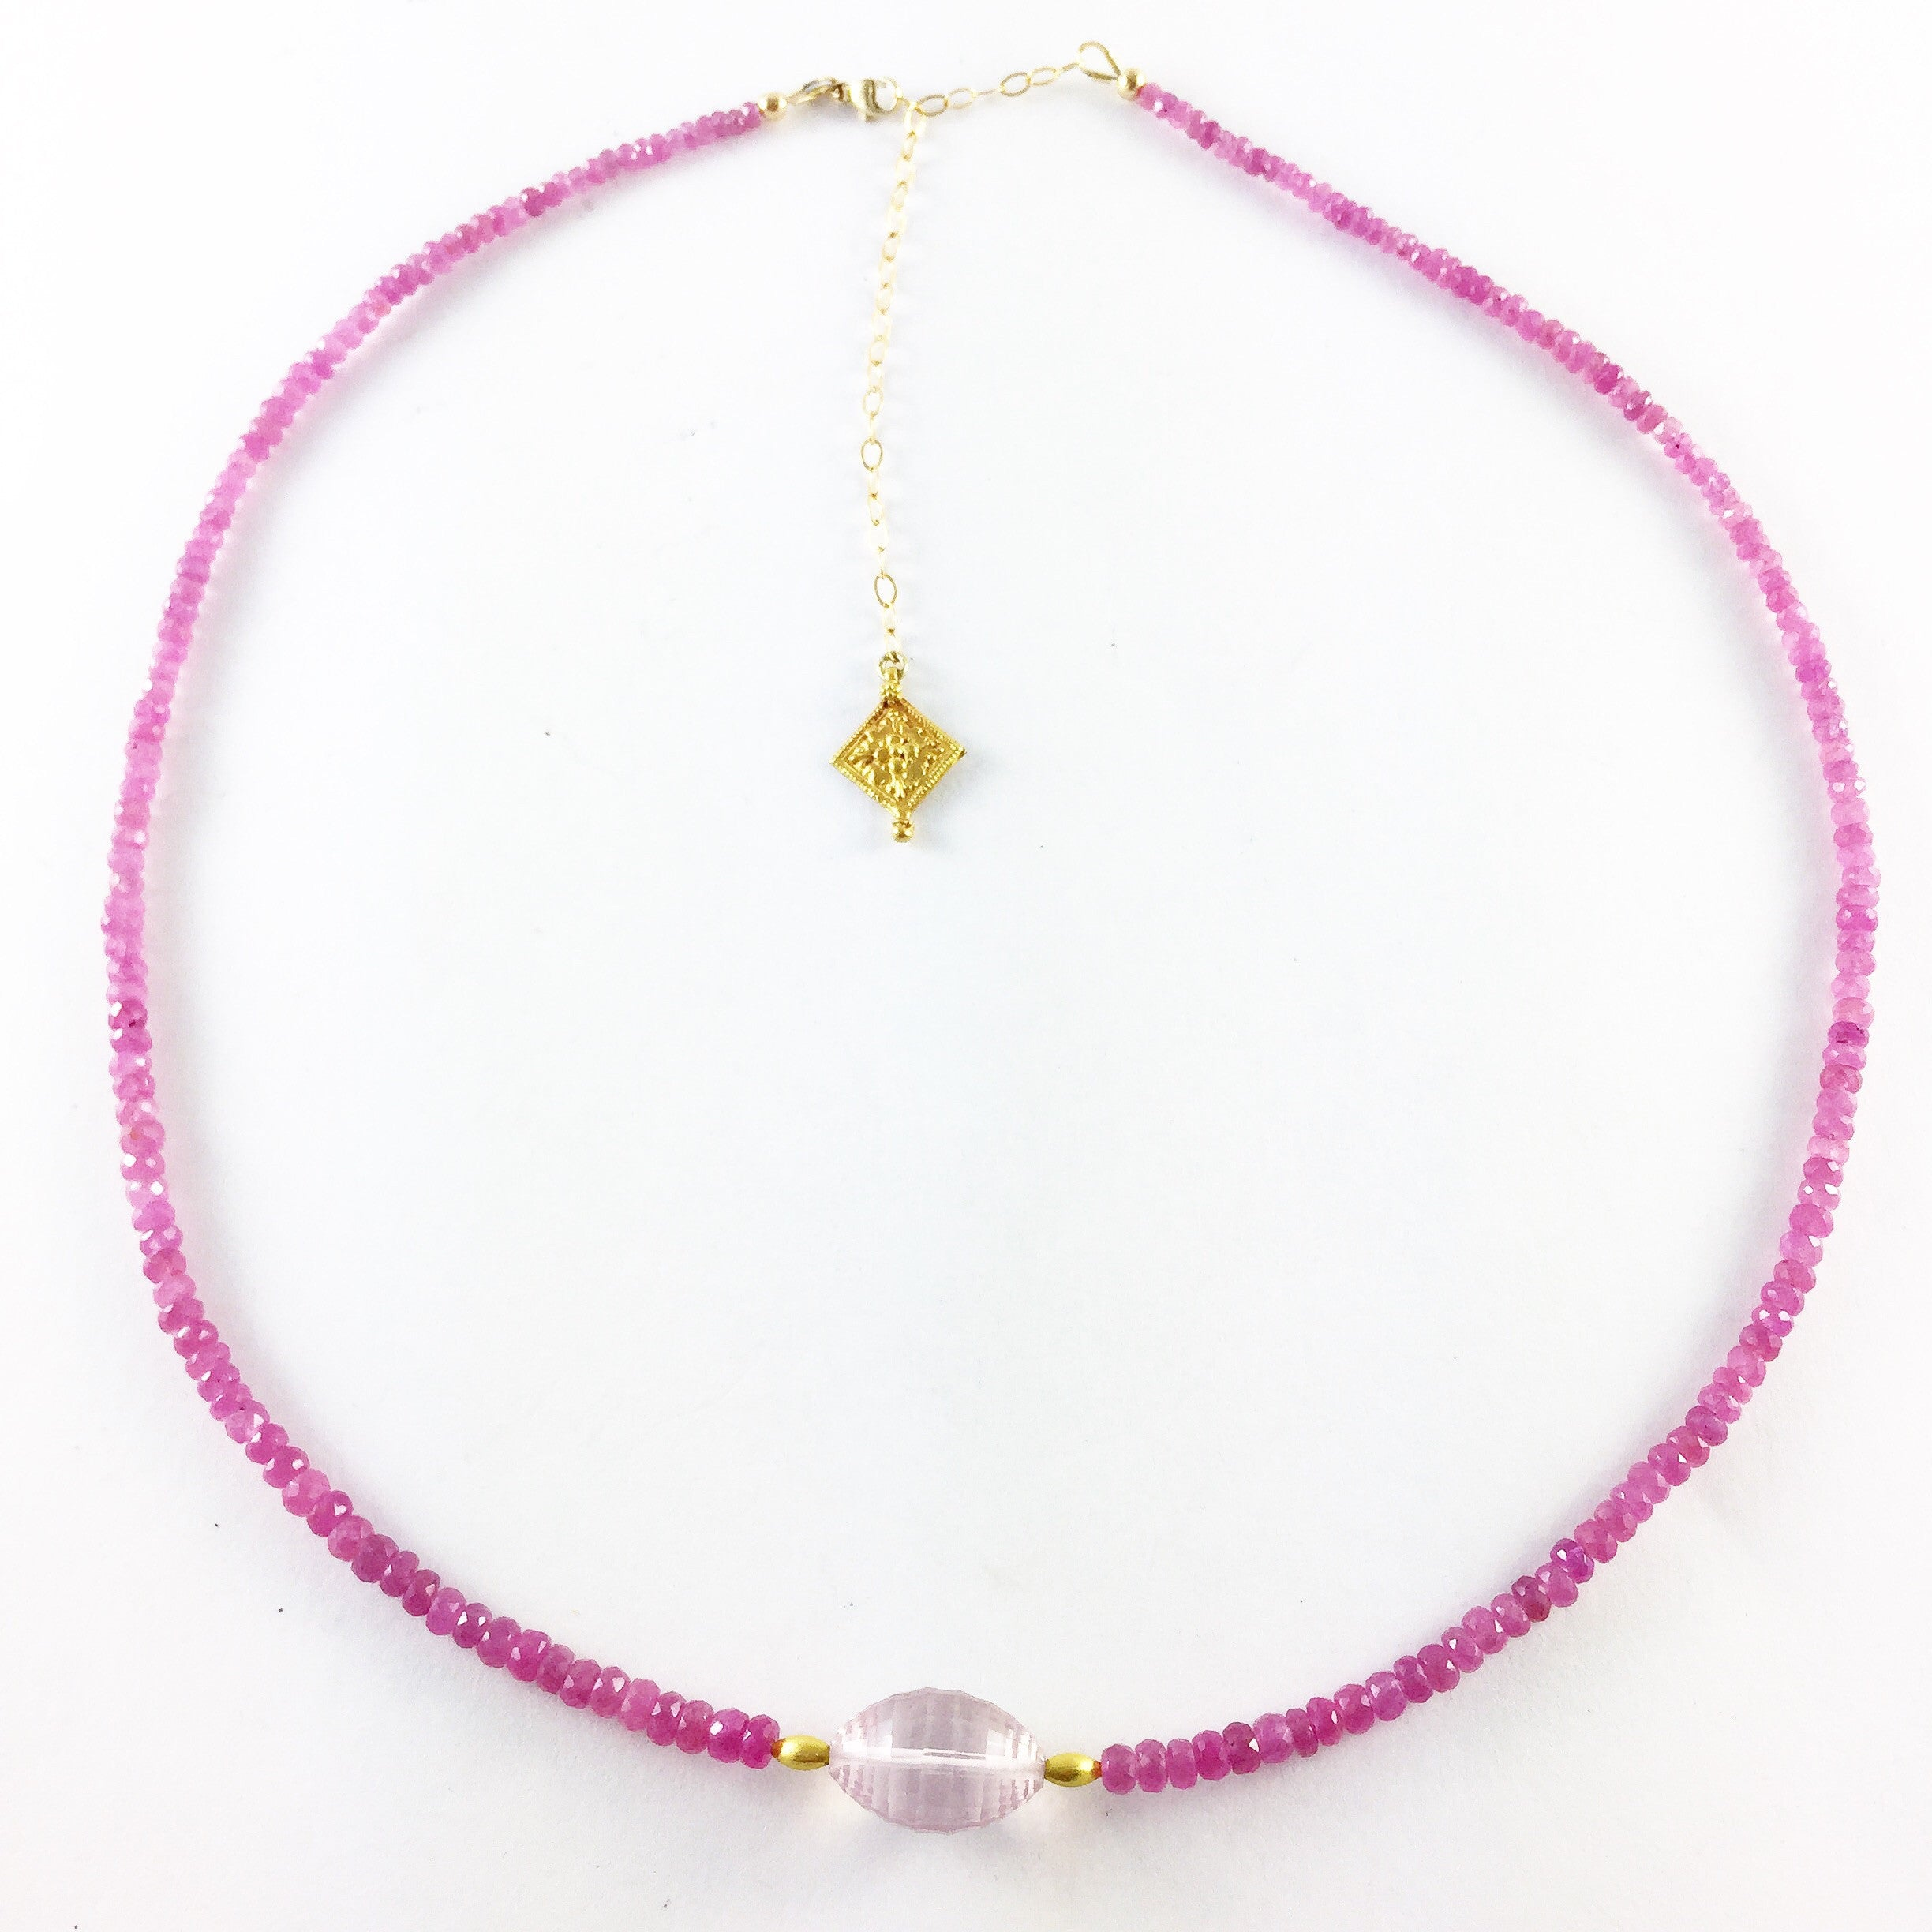 PINK SAPPHIRE NECKLACE. THE HEART CHAKRA